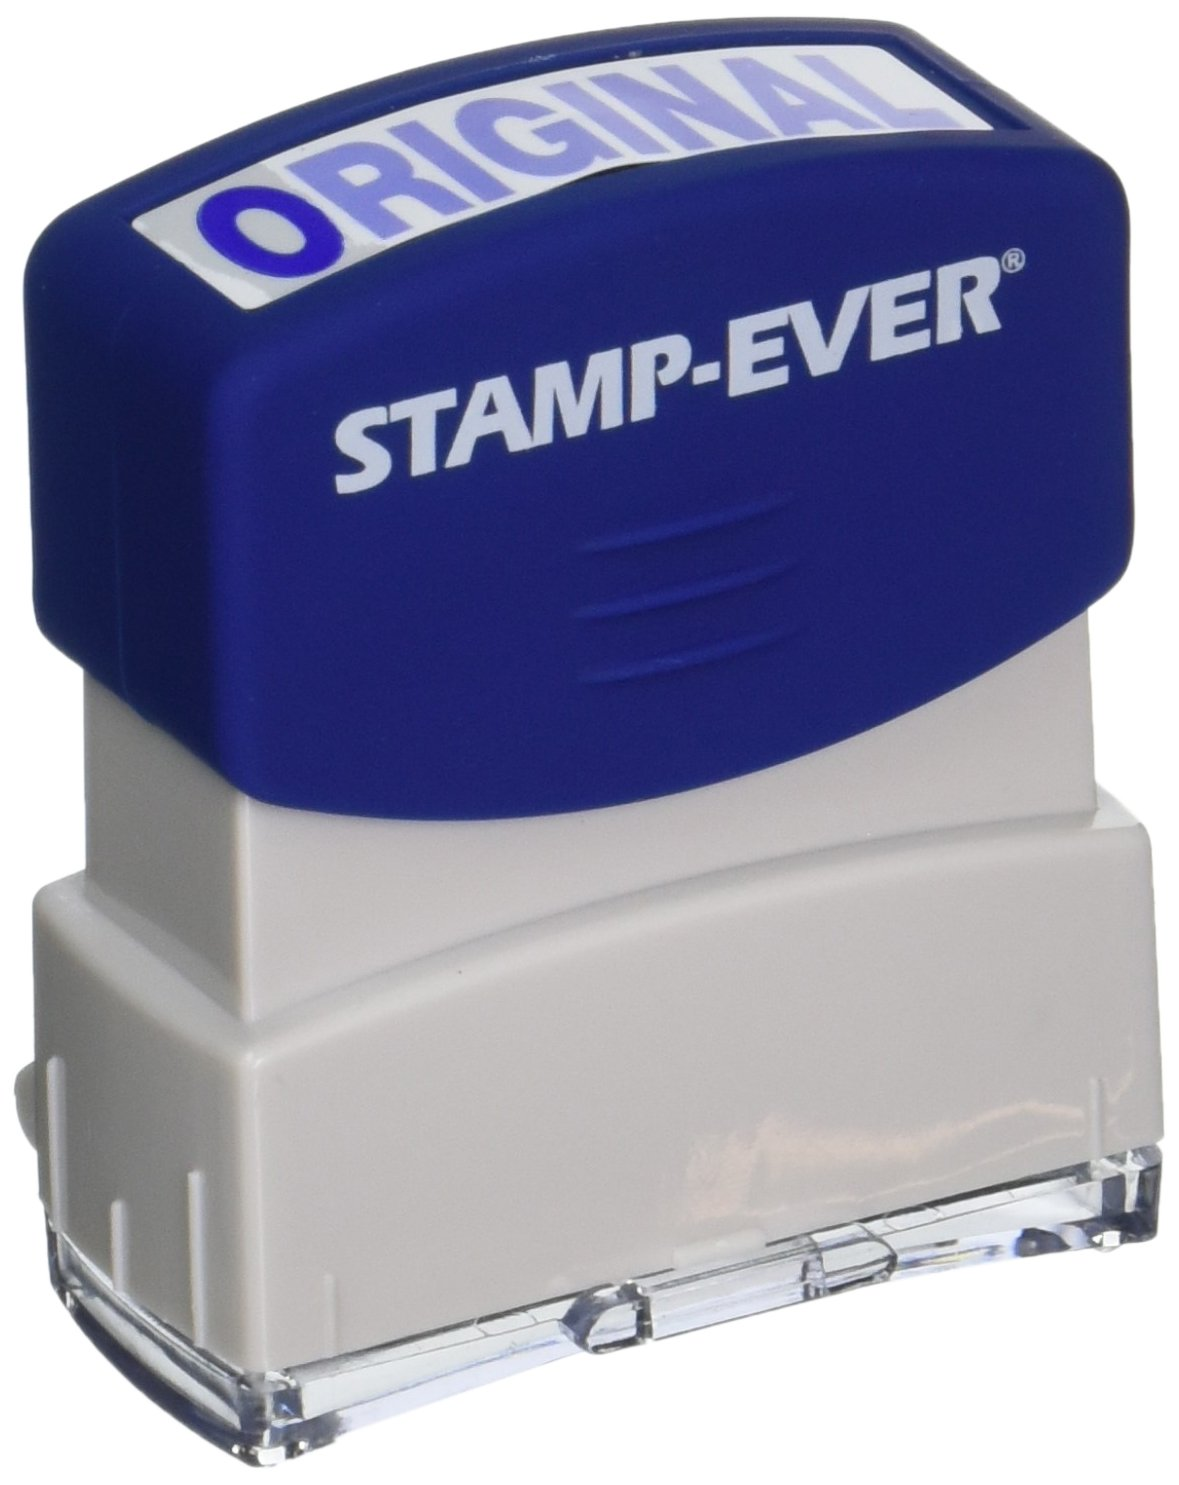 Stamp-Ever-Pre-Inked Message, Past Due, Impression Size:9/16 X 1-11/16-Inch, Red-5960